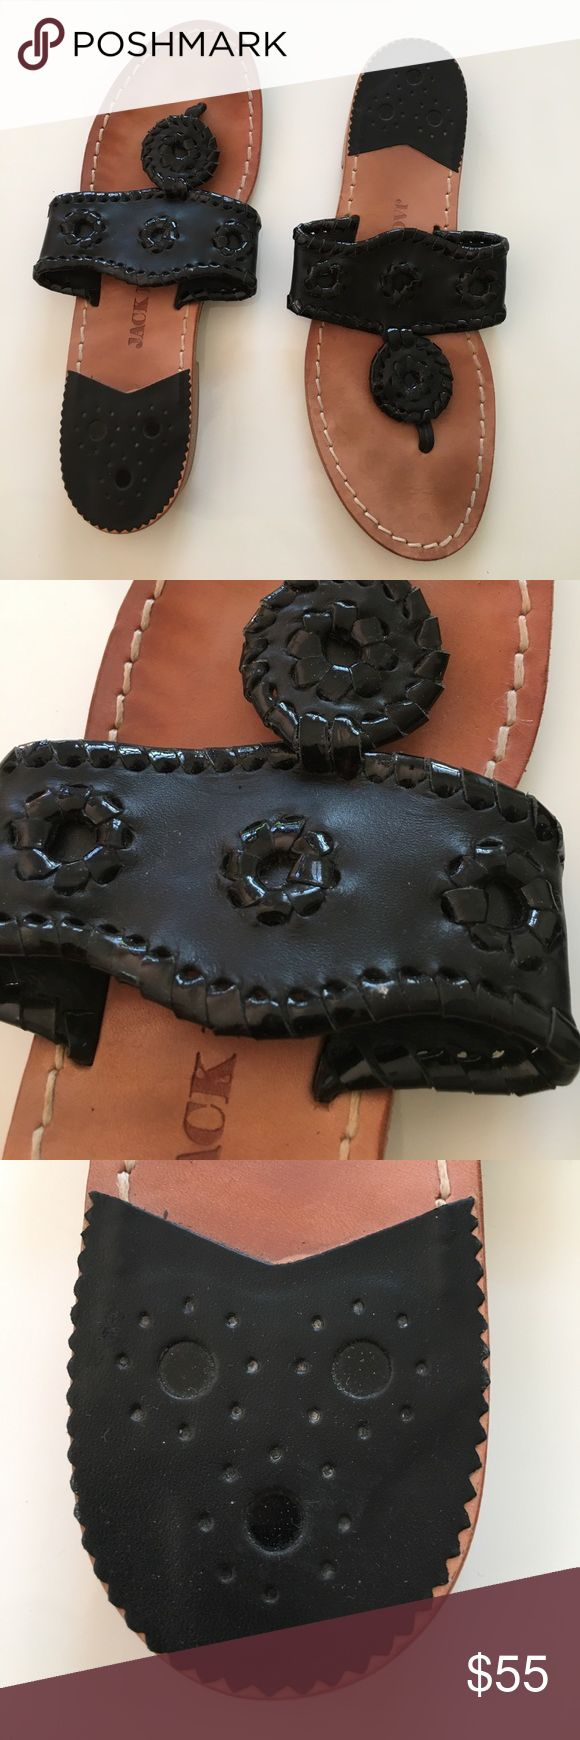 Jack Rogers Sandals Black Jack Rogers sandals size 6. In great condition. Jack Rogers Shoes Sandals